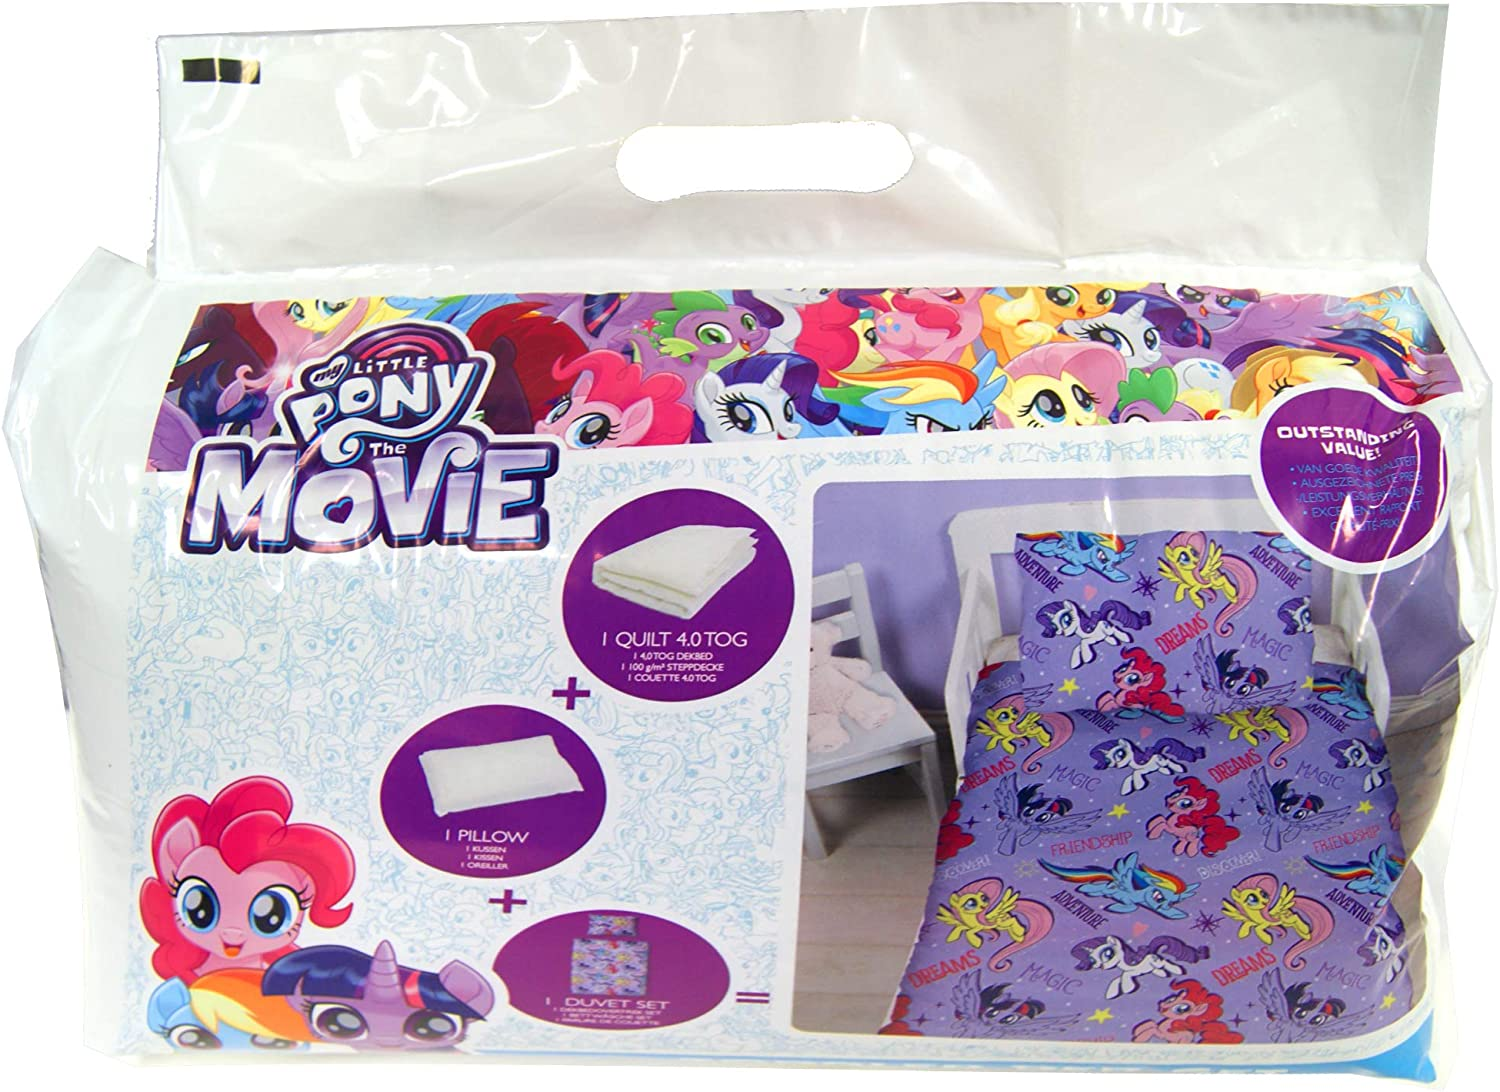 Cartoon Characters Brands :Junior Bed Set,4 Piece Bedding Bundle Quilt,Pillow Pillowcase,Duvet Cover (My Little Pony)